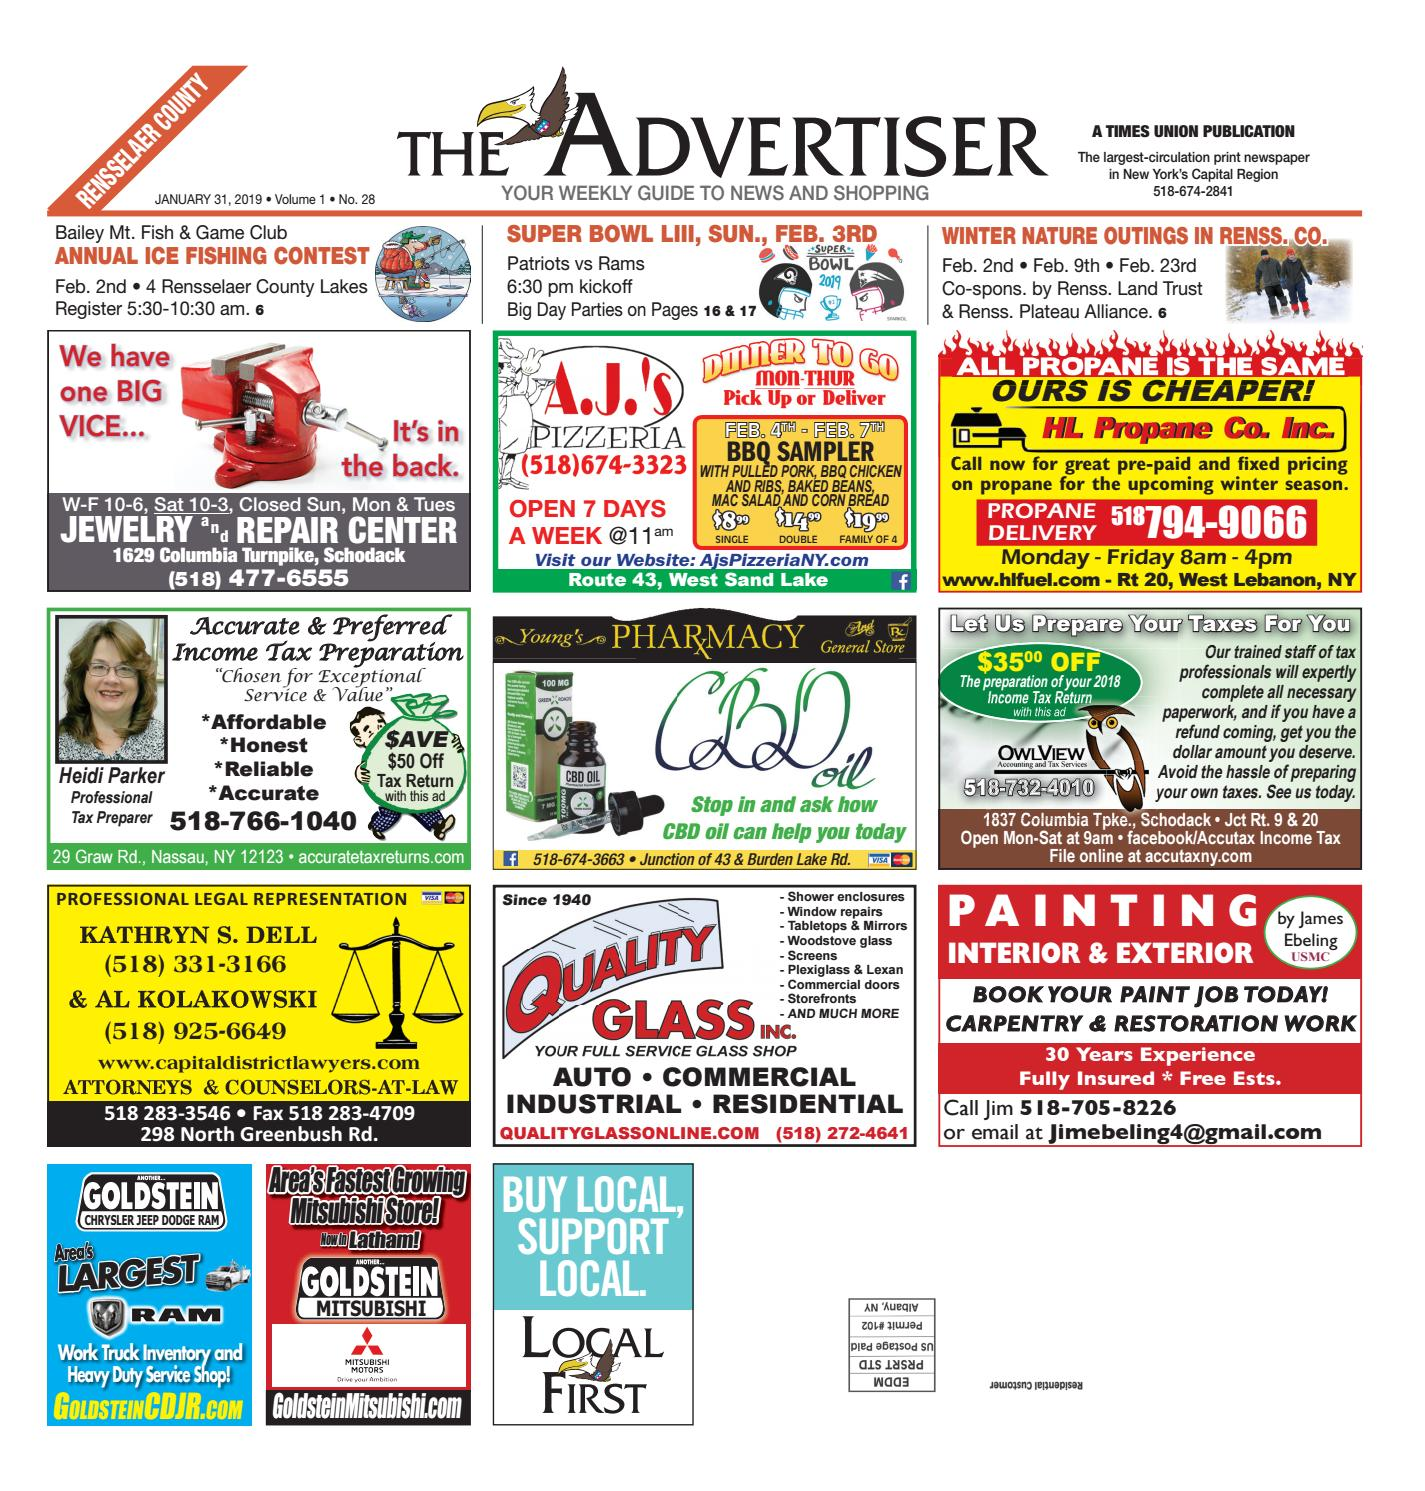 Local First The Advertiser 013119 by Capital Region Weekly Newspapers -  issuu